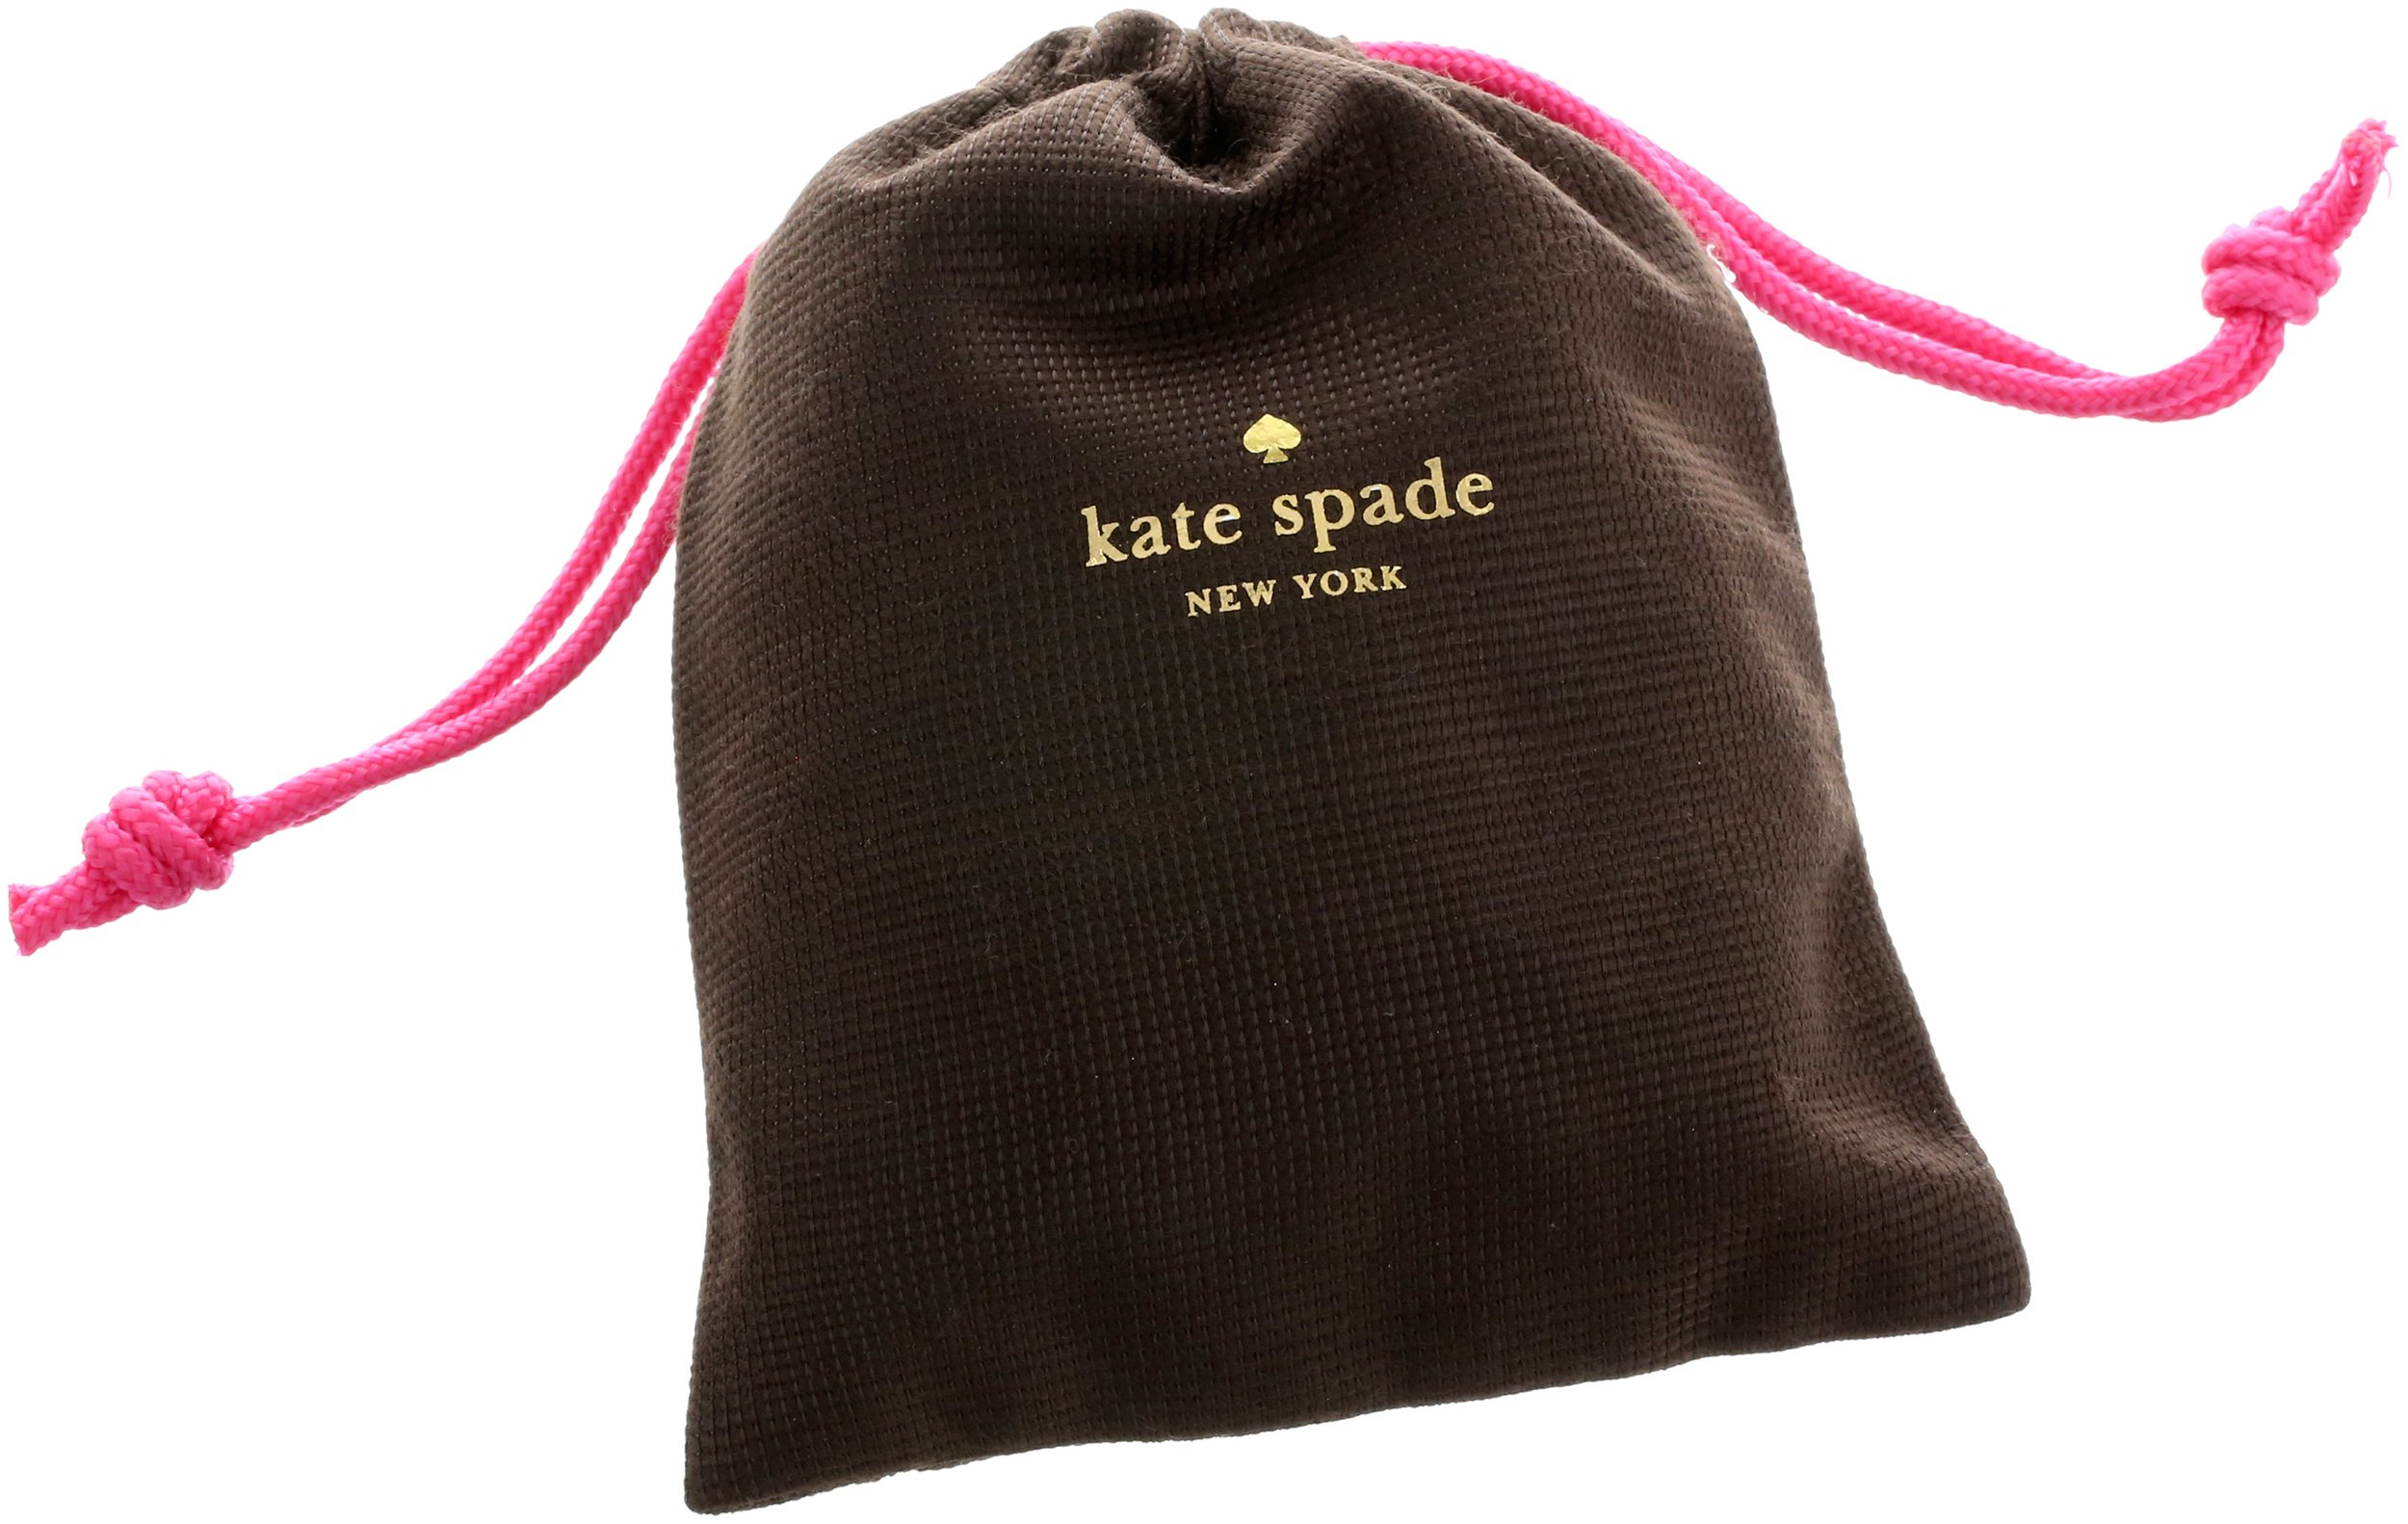 kate spade new york Kate Spade Earrings Small Square Clear Leverback Earrings by Kate Spade New York (Image #3)